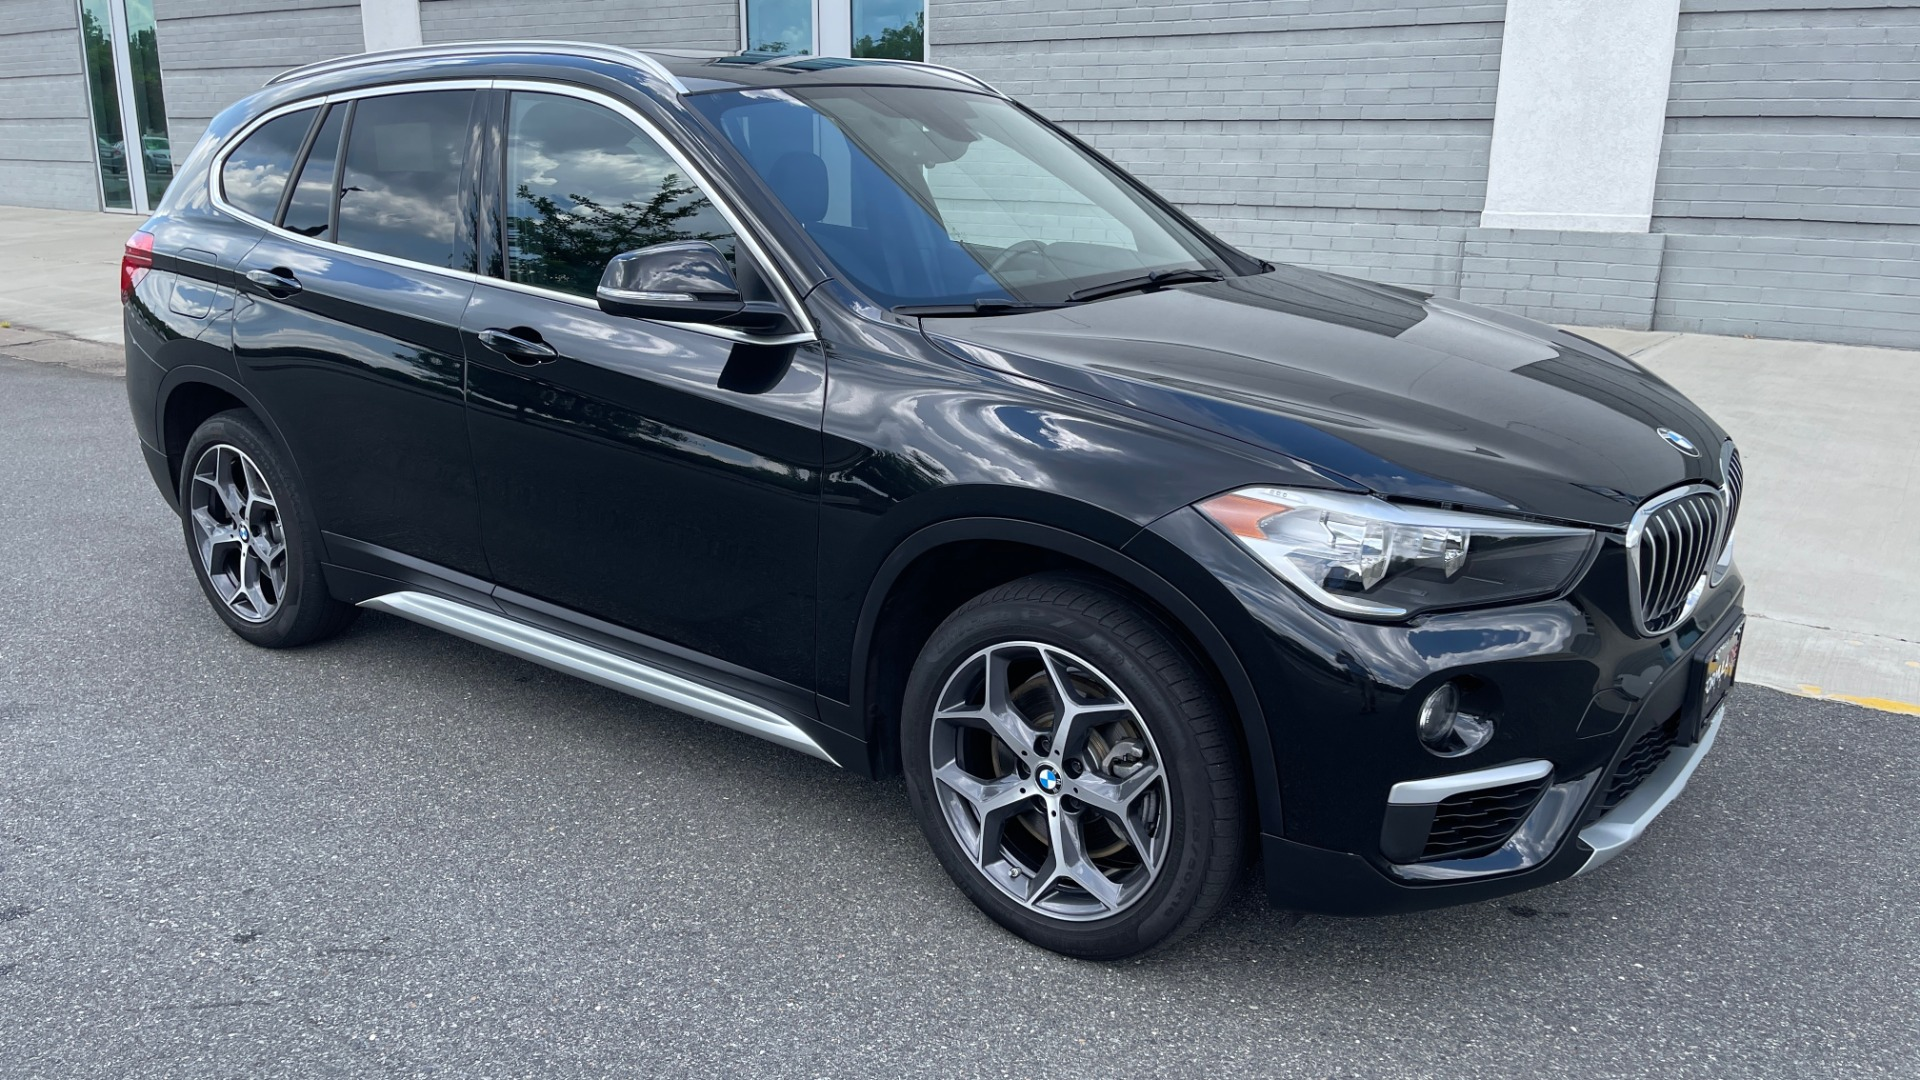 Used 2018 BMW X1 XDRIVE28I / NAV / CONV PKG / HTD STS / PANO-ROOF / REARVIEW for sale $29,995 at Formula Imports in Charlotte NC 28227 2